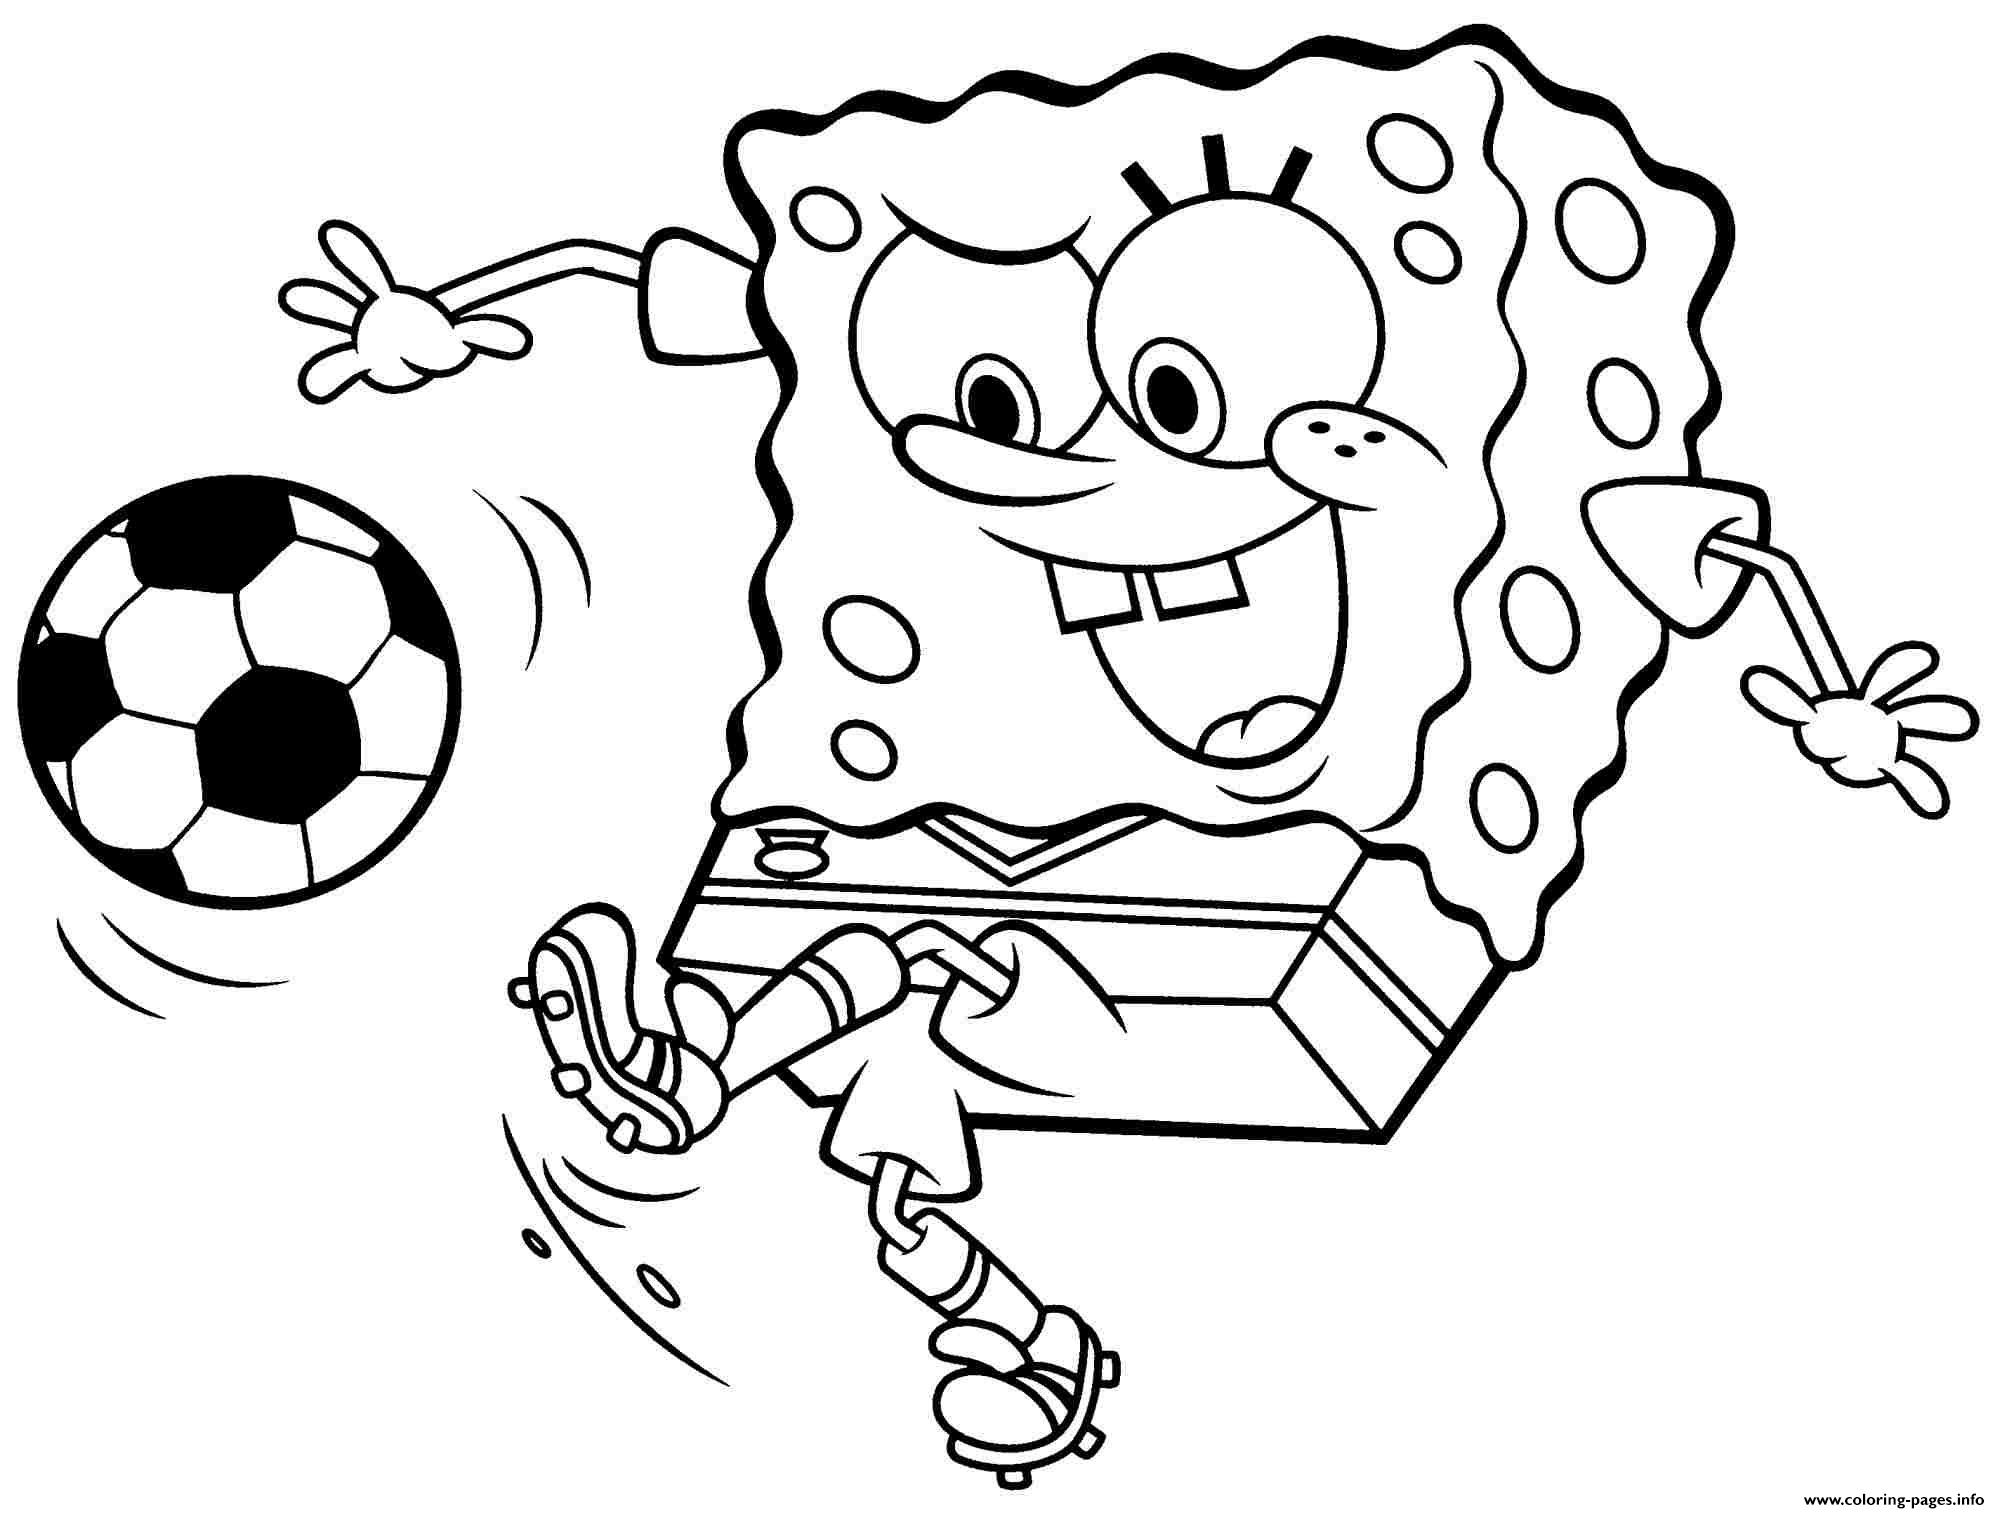 Soccer Coloring Pages - GetColoringPages.com   1513x2000